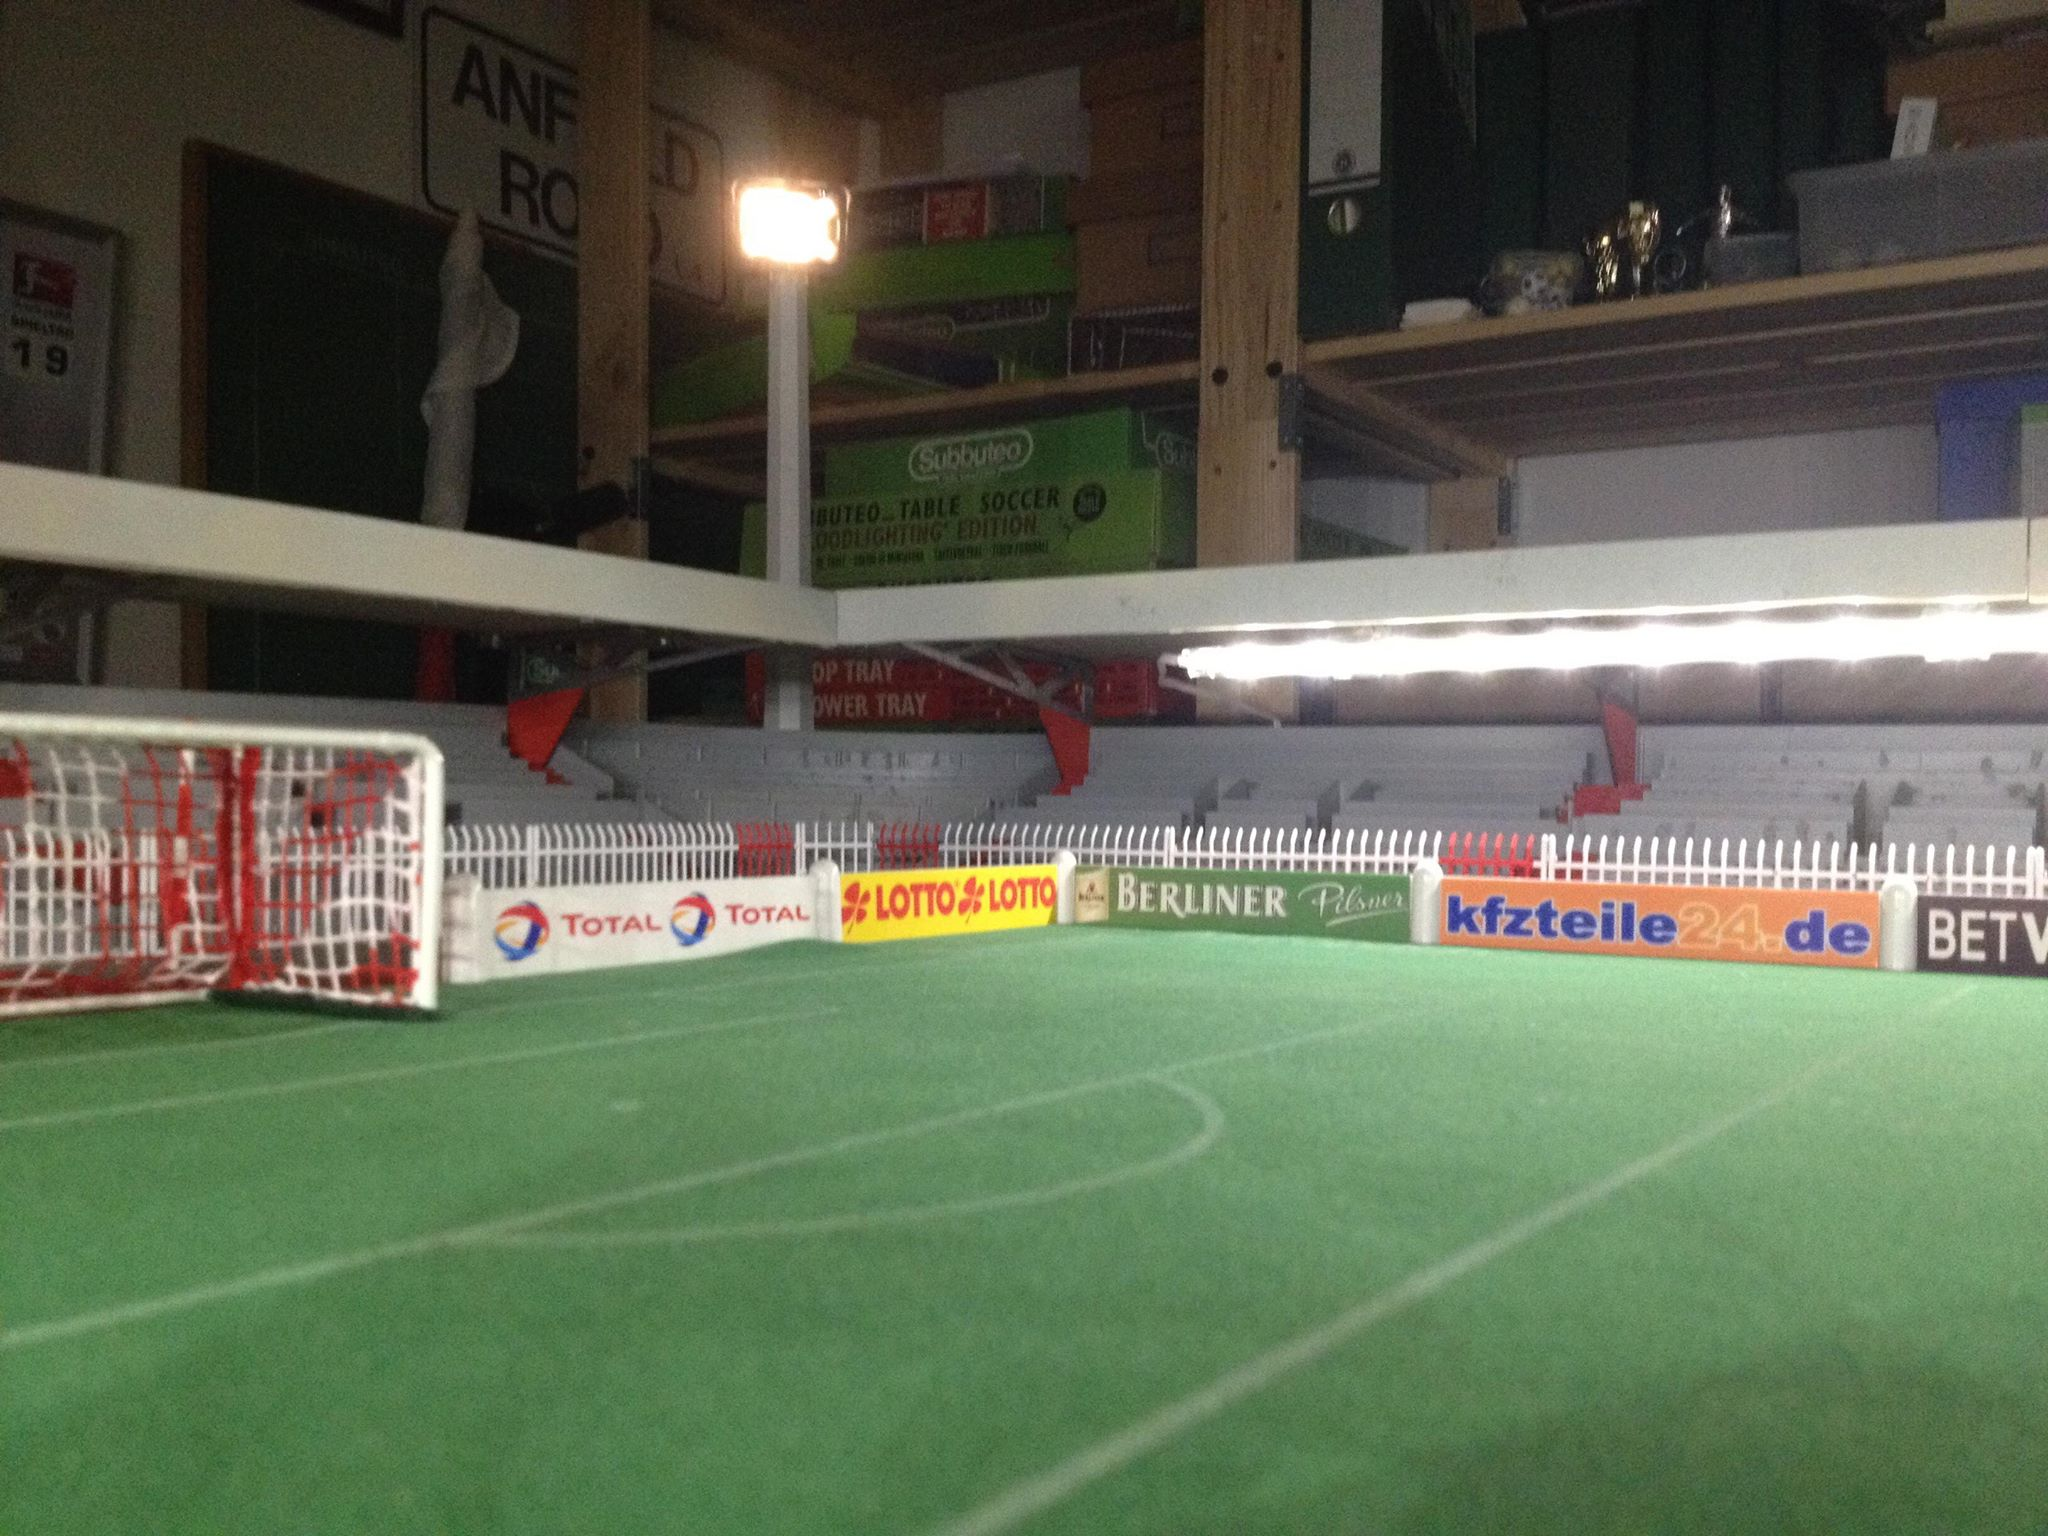 Tickets for union berlin matches can be bought online, at the club shop at the stadium, at the club shop at the bahnhofstraße 23 in kopenick near the stadium, or at the union petrol station near the stadium on the other side of the spree. How one fan built this incredible atmospheric Subbuteo